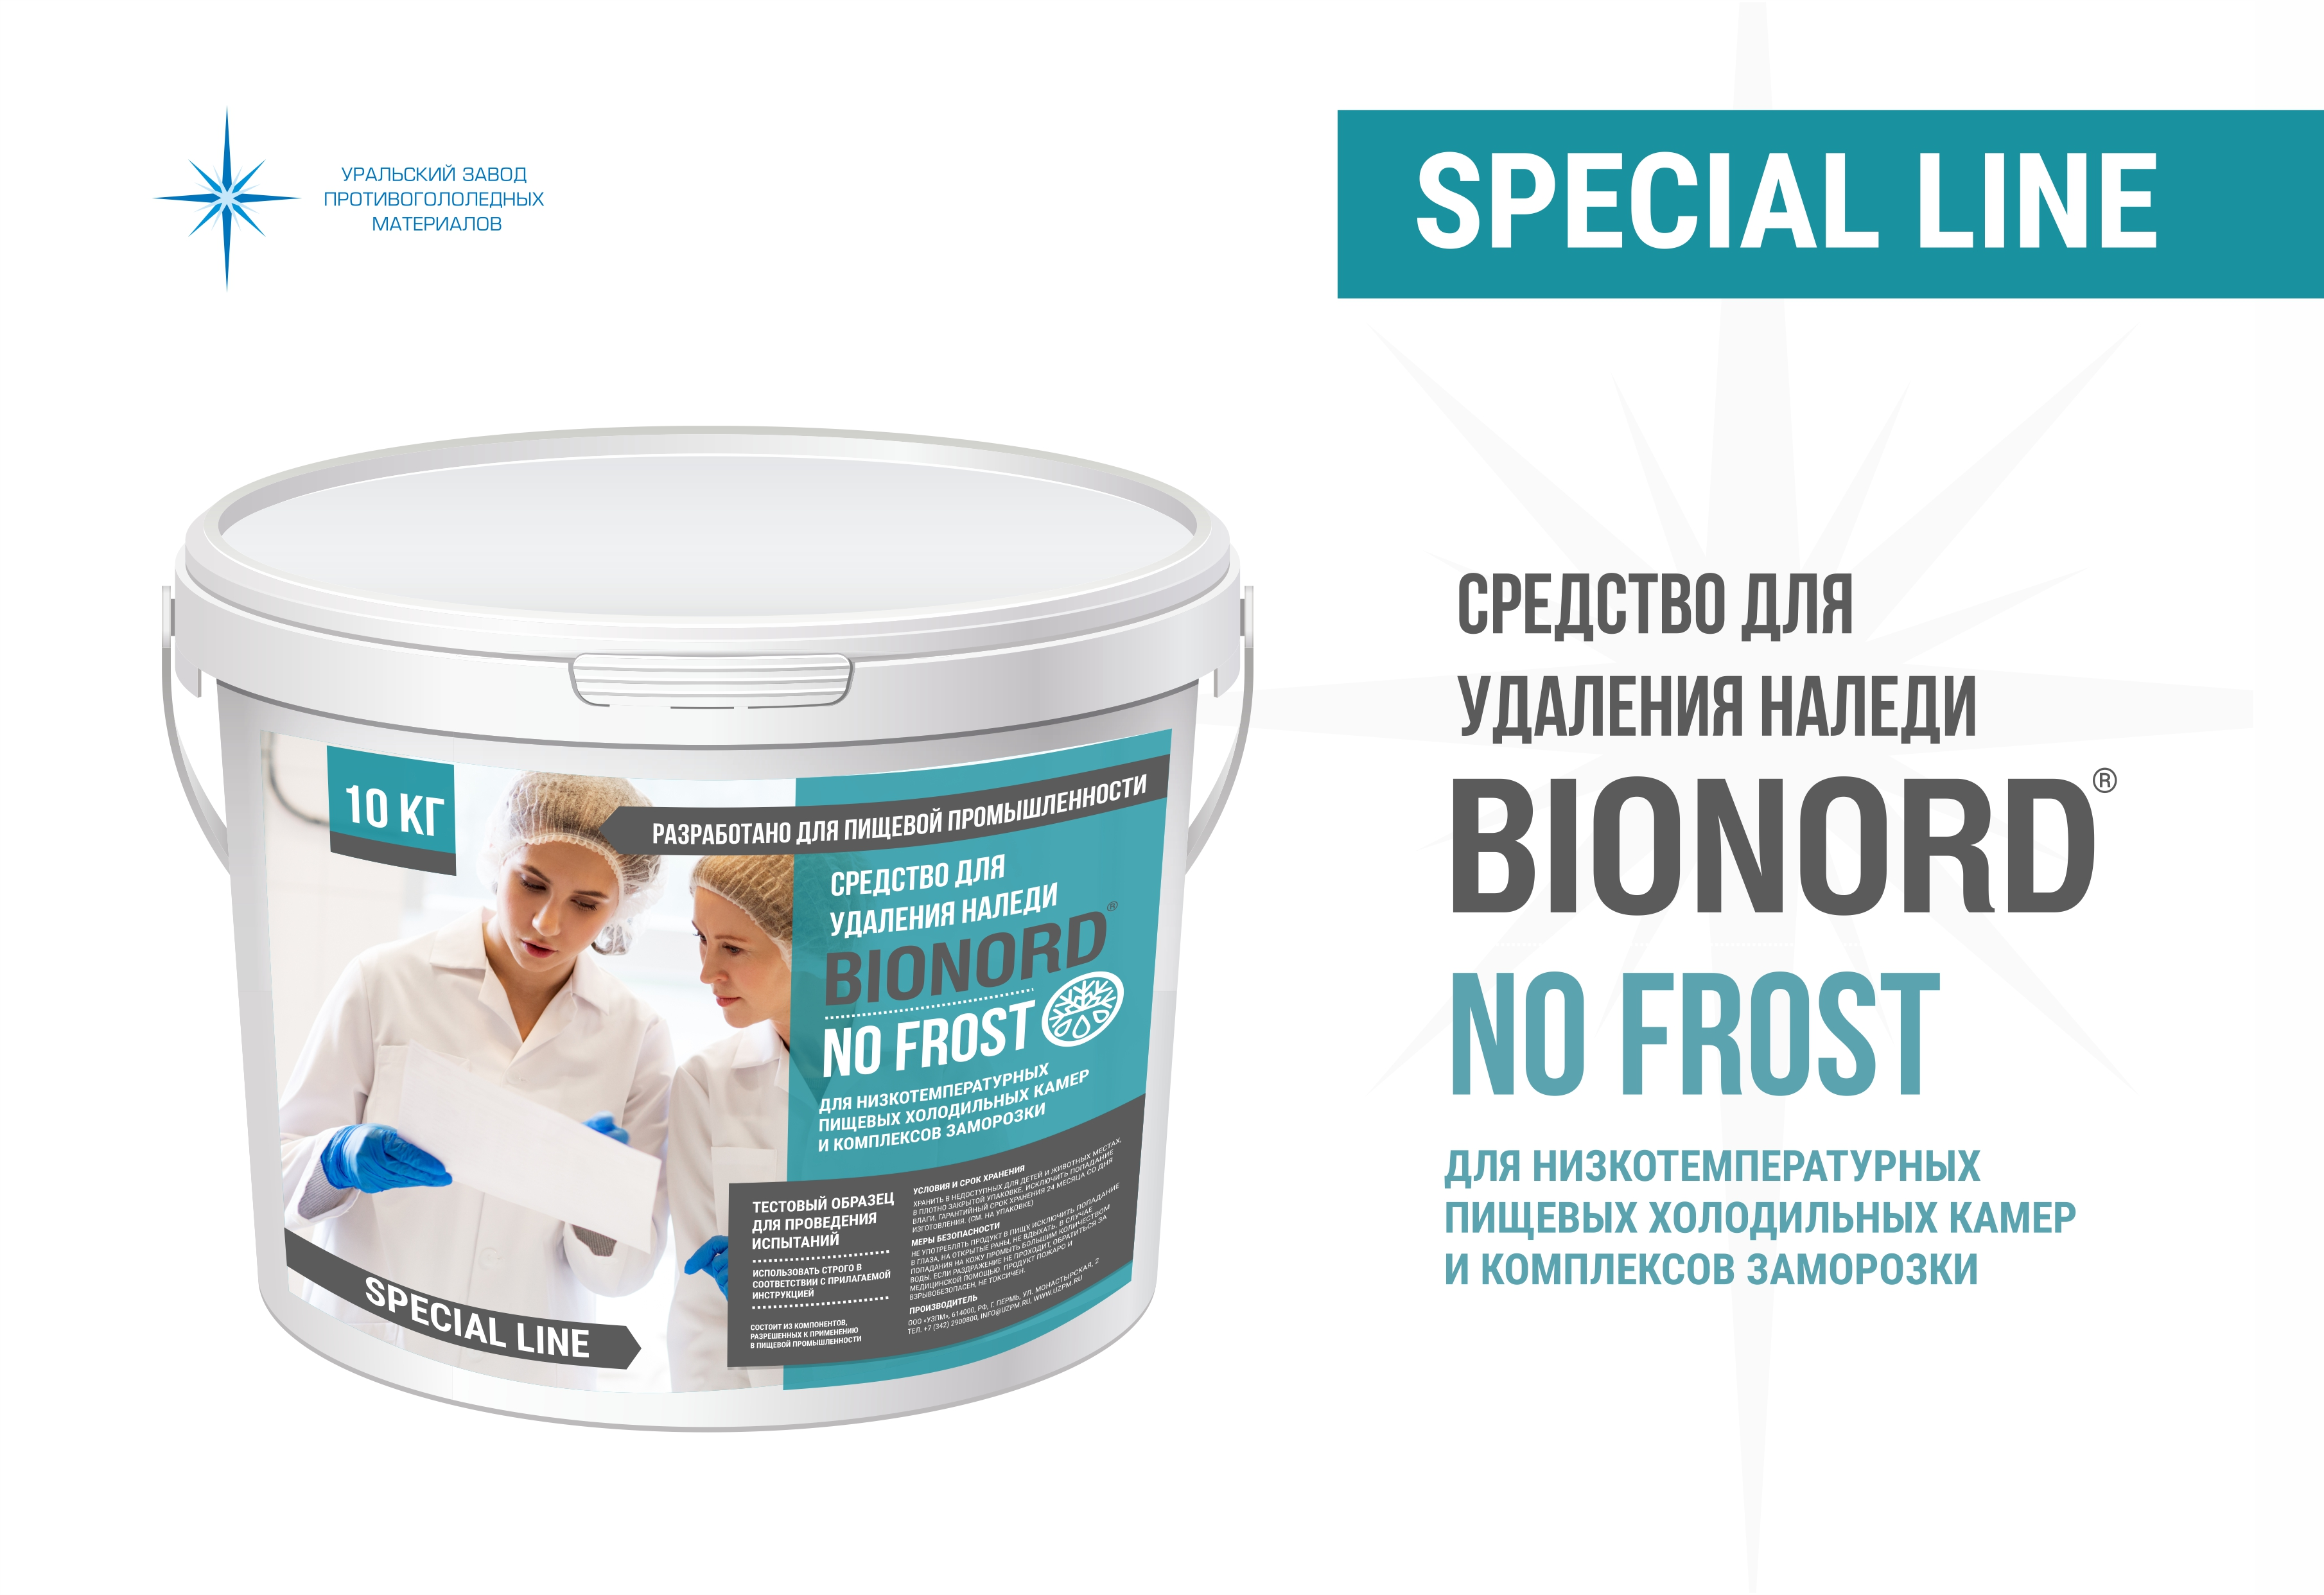 BIONORD NO FROST